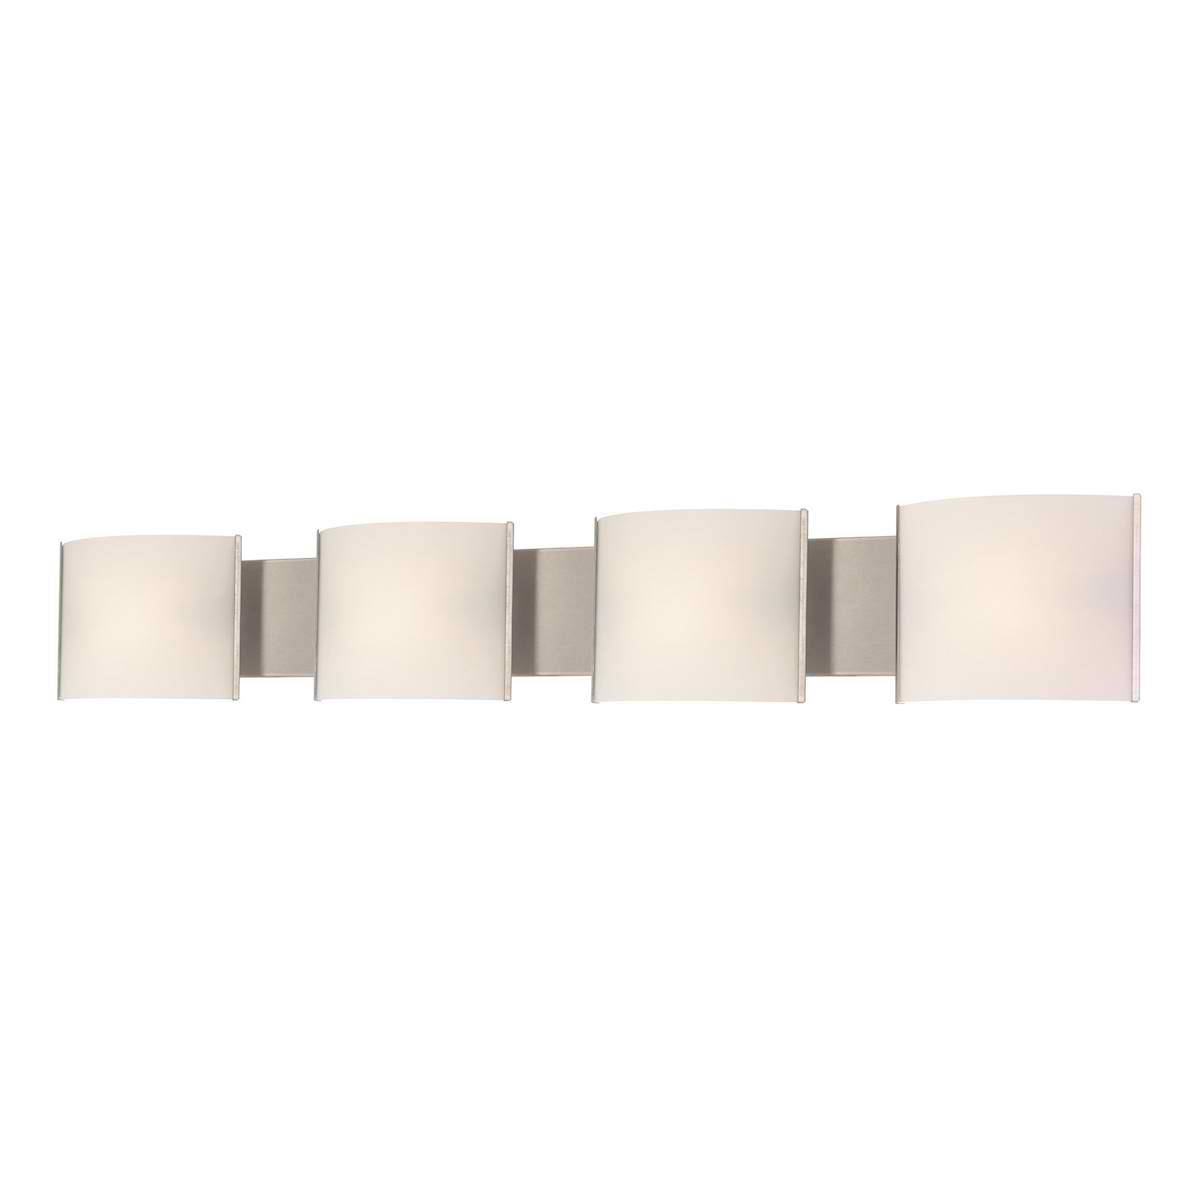 Pannelli Vanity - 4 Light with Lamps. White Opal Glass / SS Finish